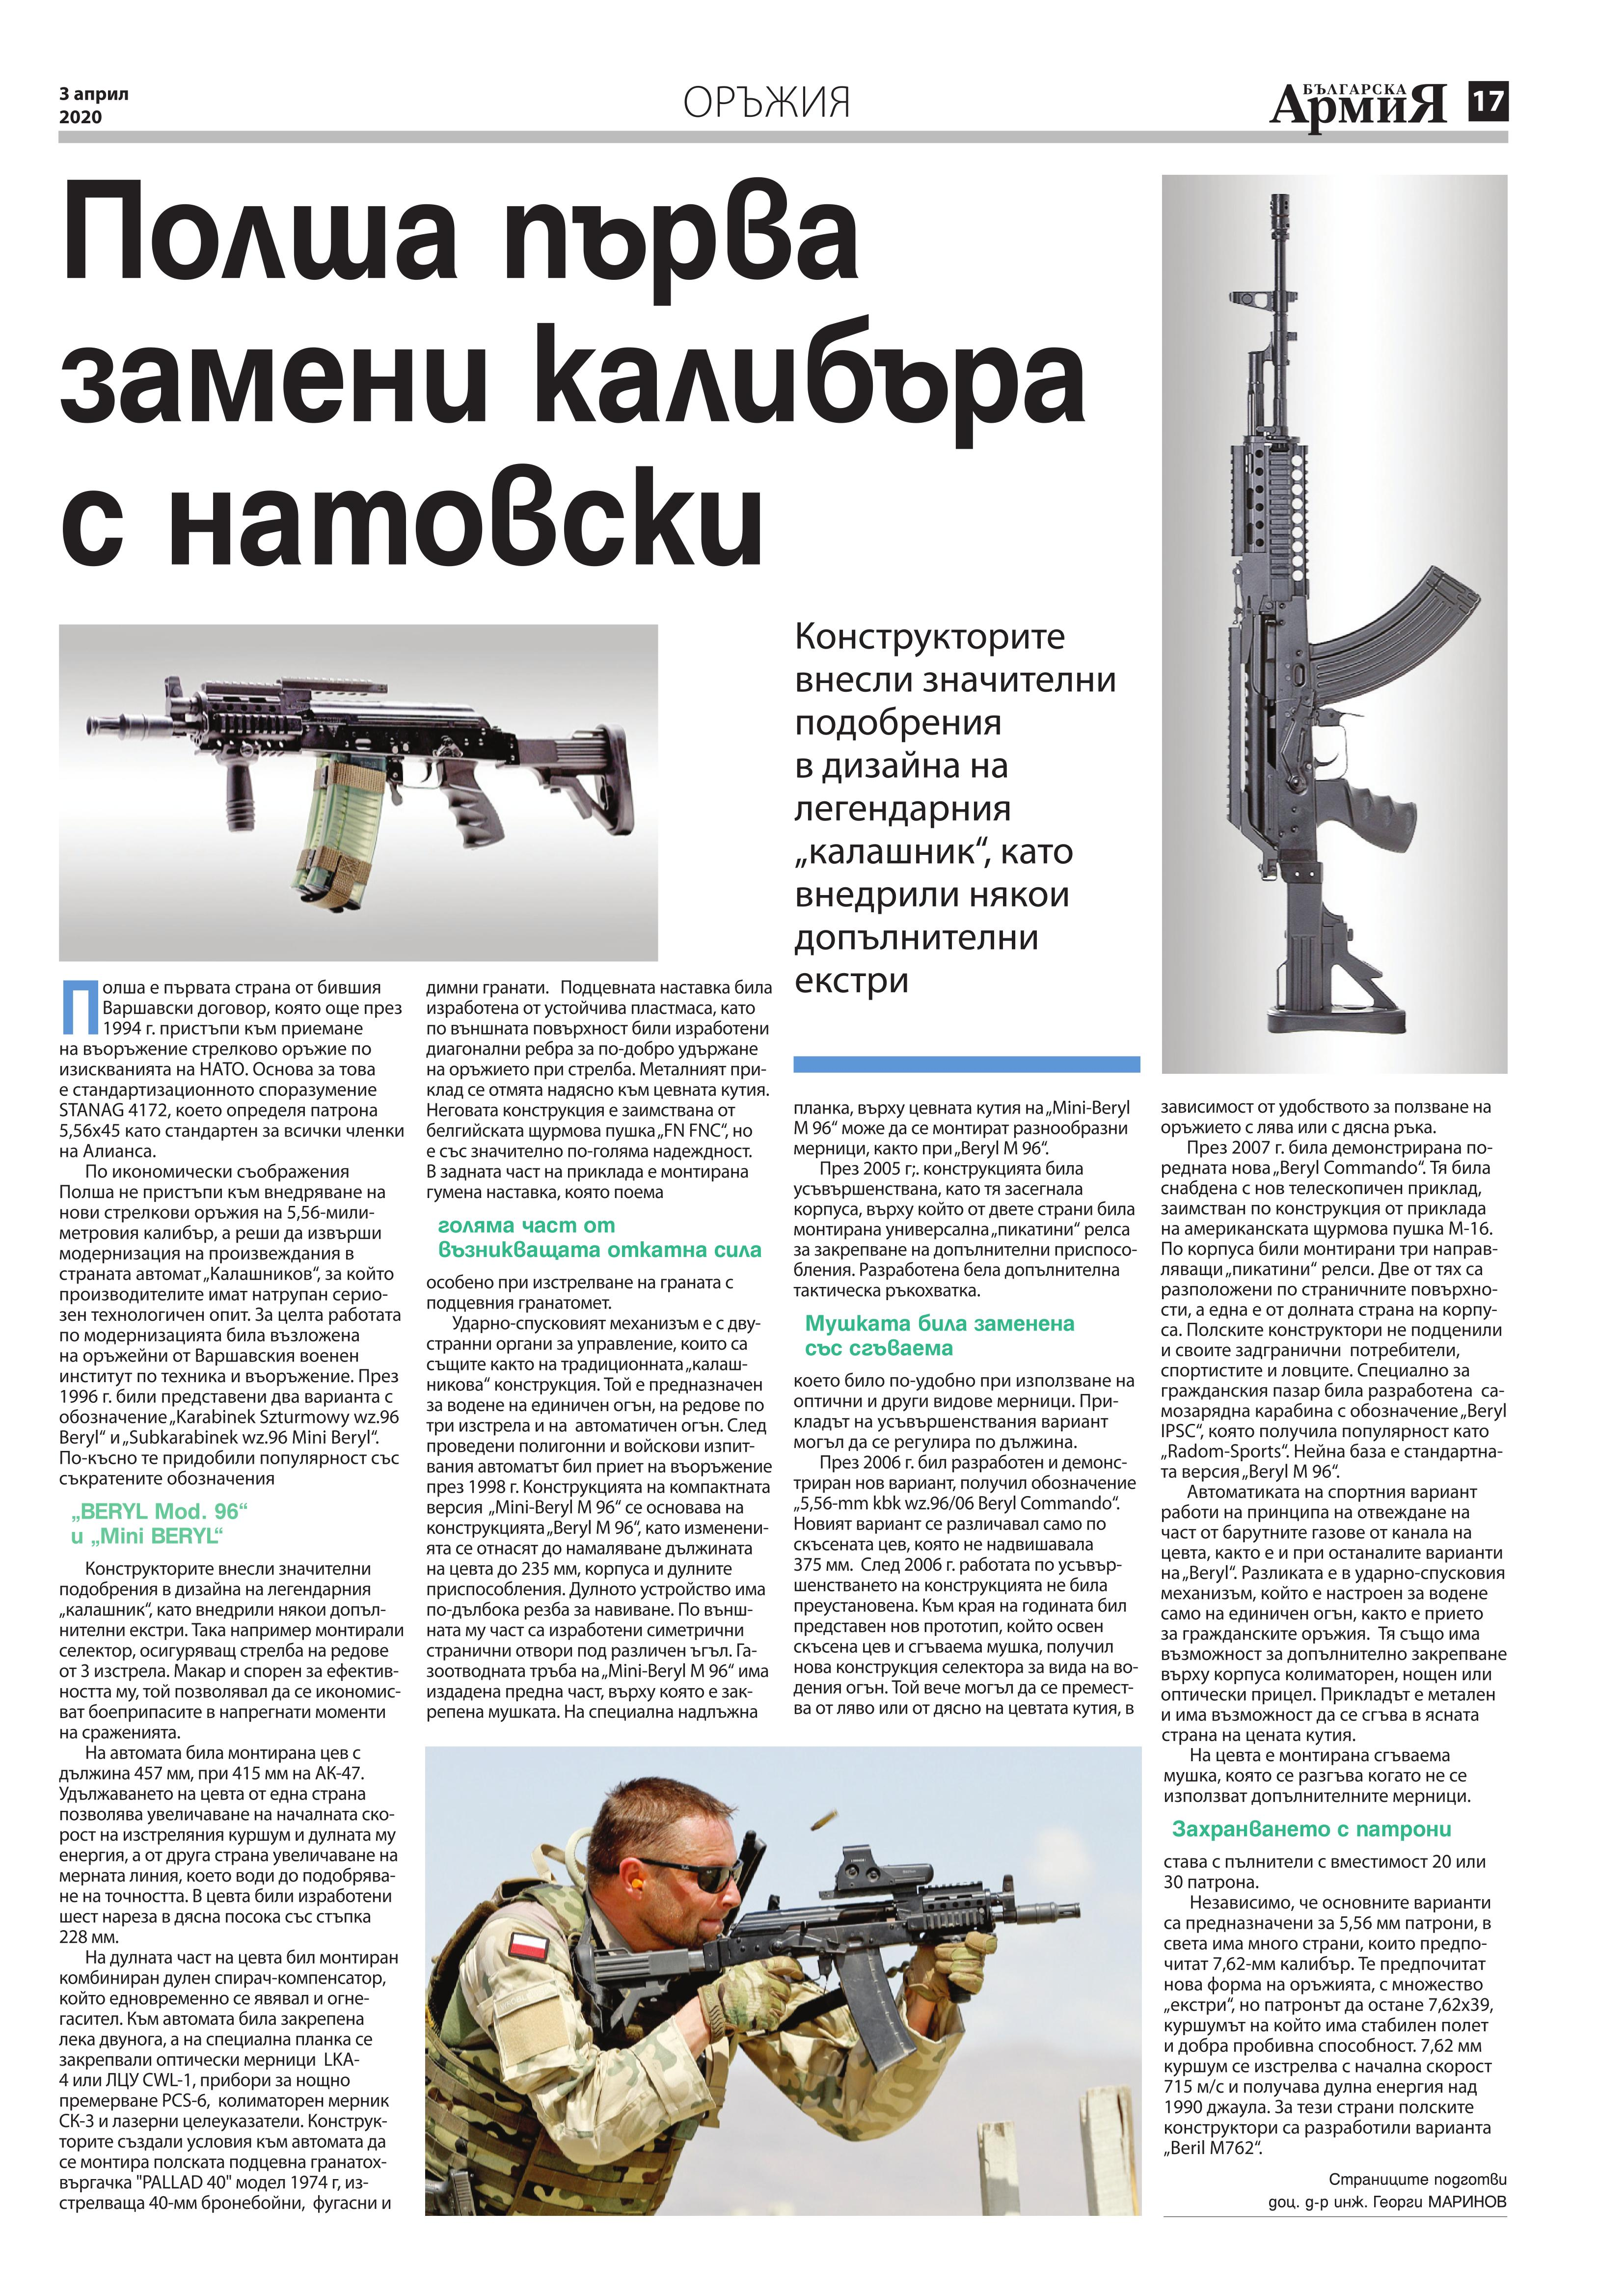 https://www.armymedia.bg/wp-content/uploads/2015/06/17.page1_-133.jpg